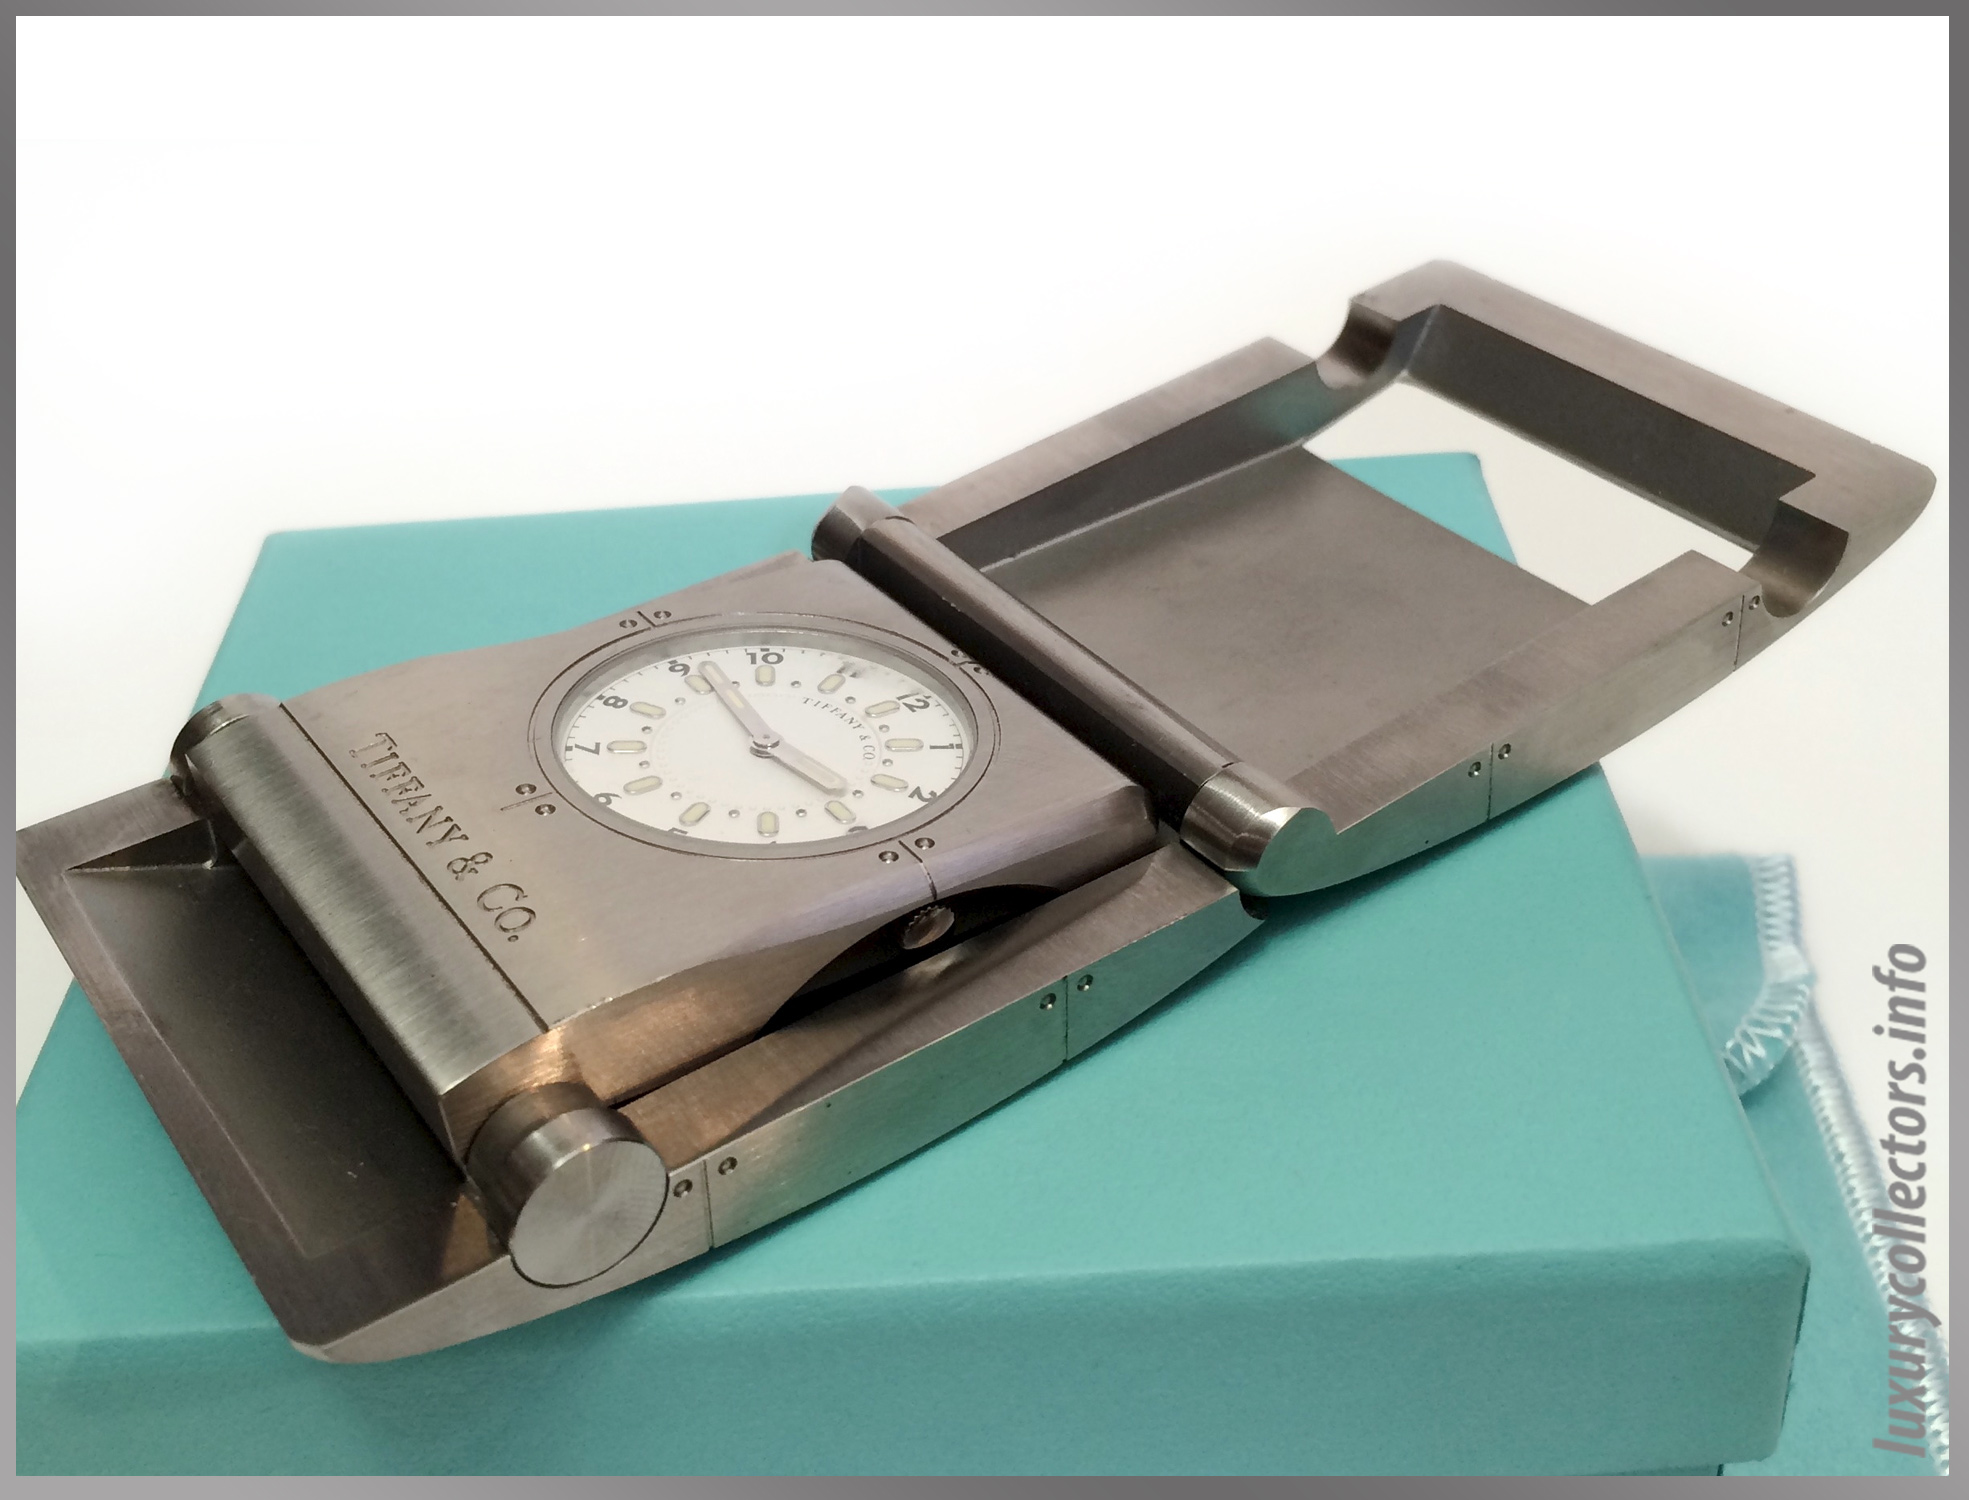 Tiffany & and Co. Streamerica Stainless Steel Metrozone Travel Alarm Clock Time Desk Openned inside